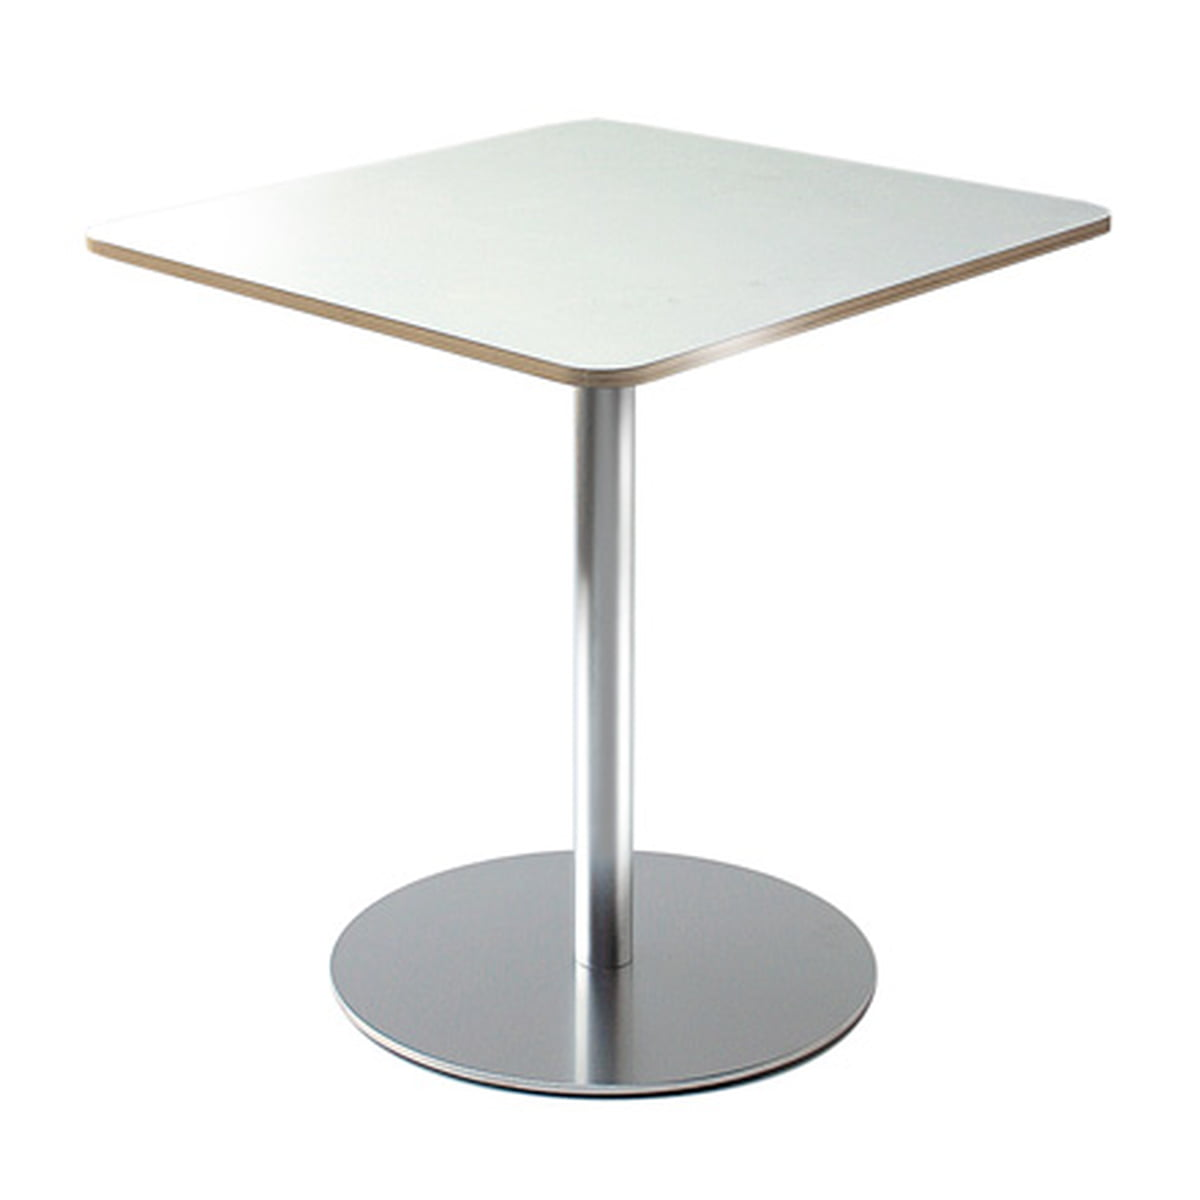 Brio Bar Table By La Palma In Our Shop - Original tulip table